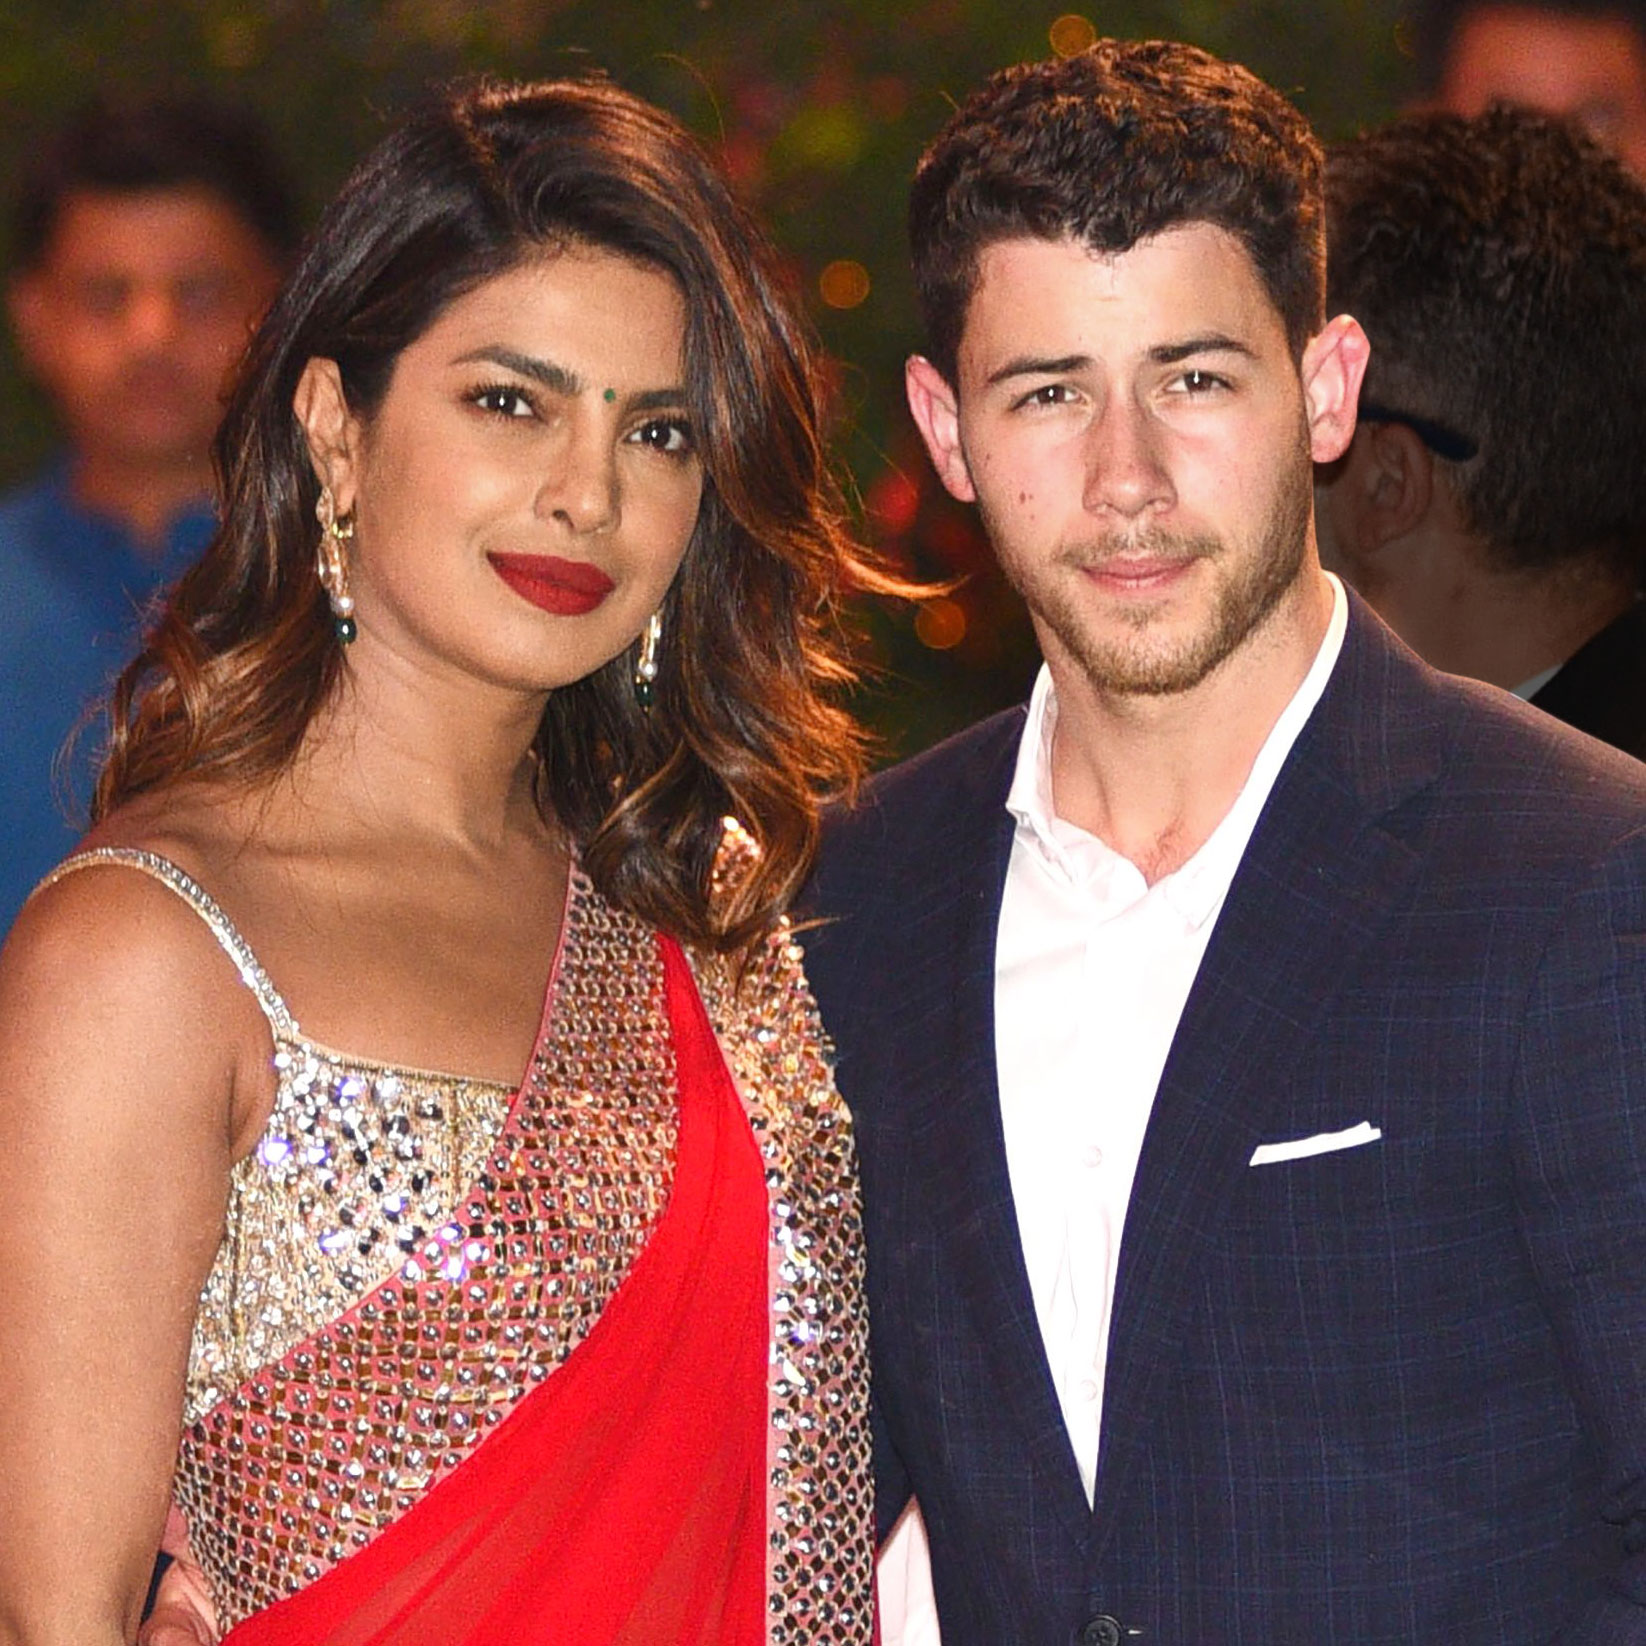 CELEBRITY COUPLES: ON THE FAST TRACK